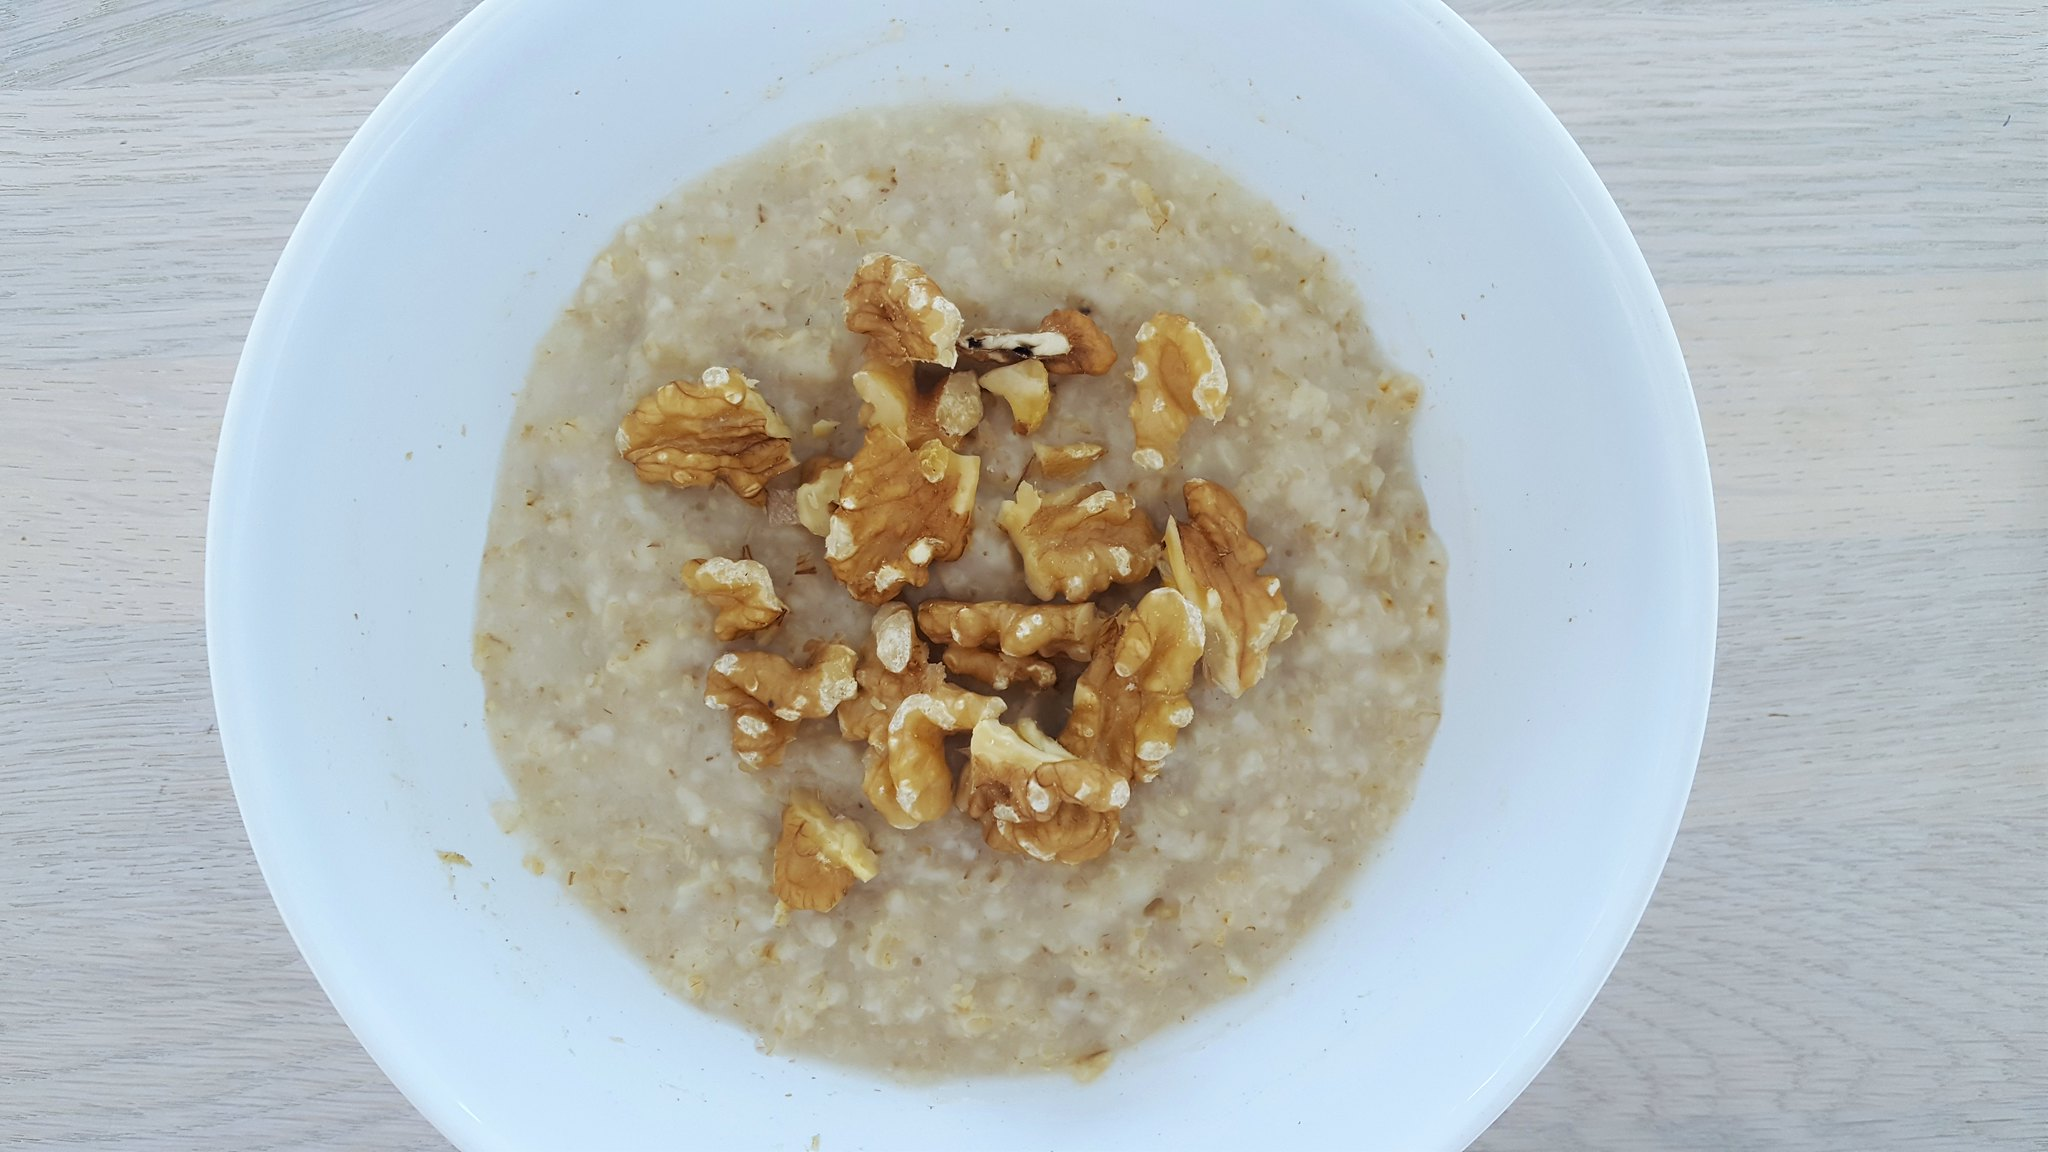 Recipe for Homemade Oatmeal in Microwave oven